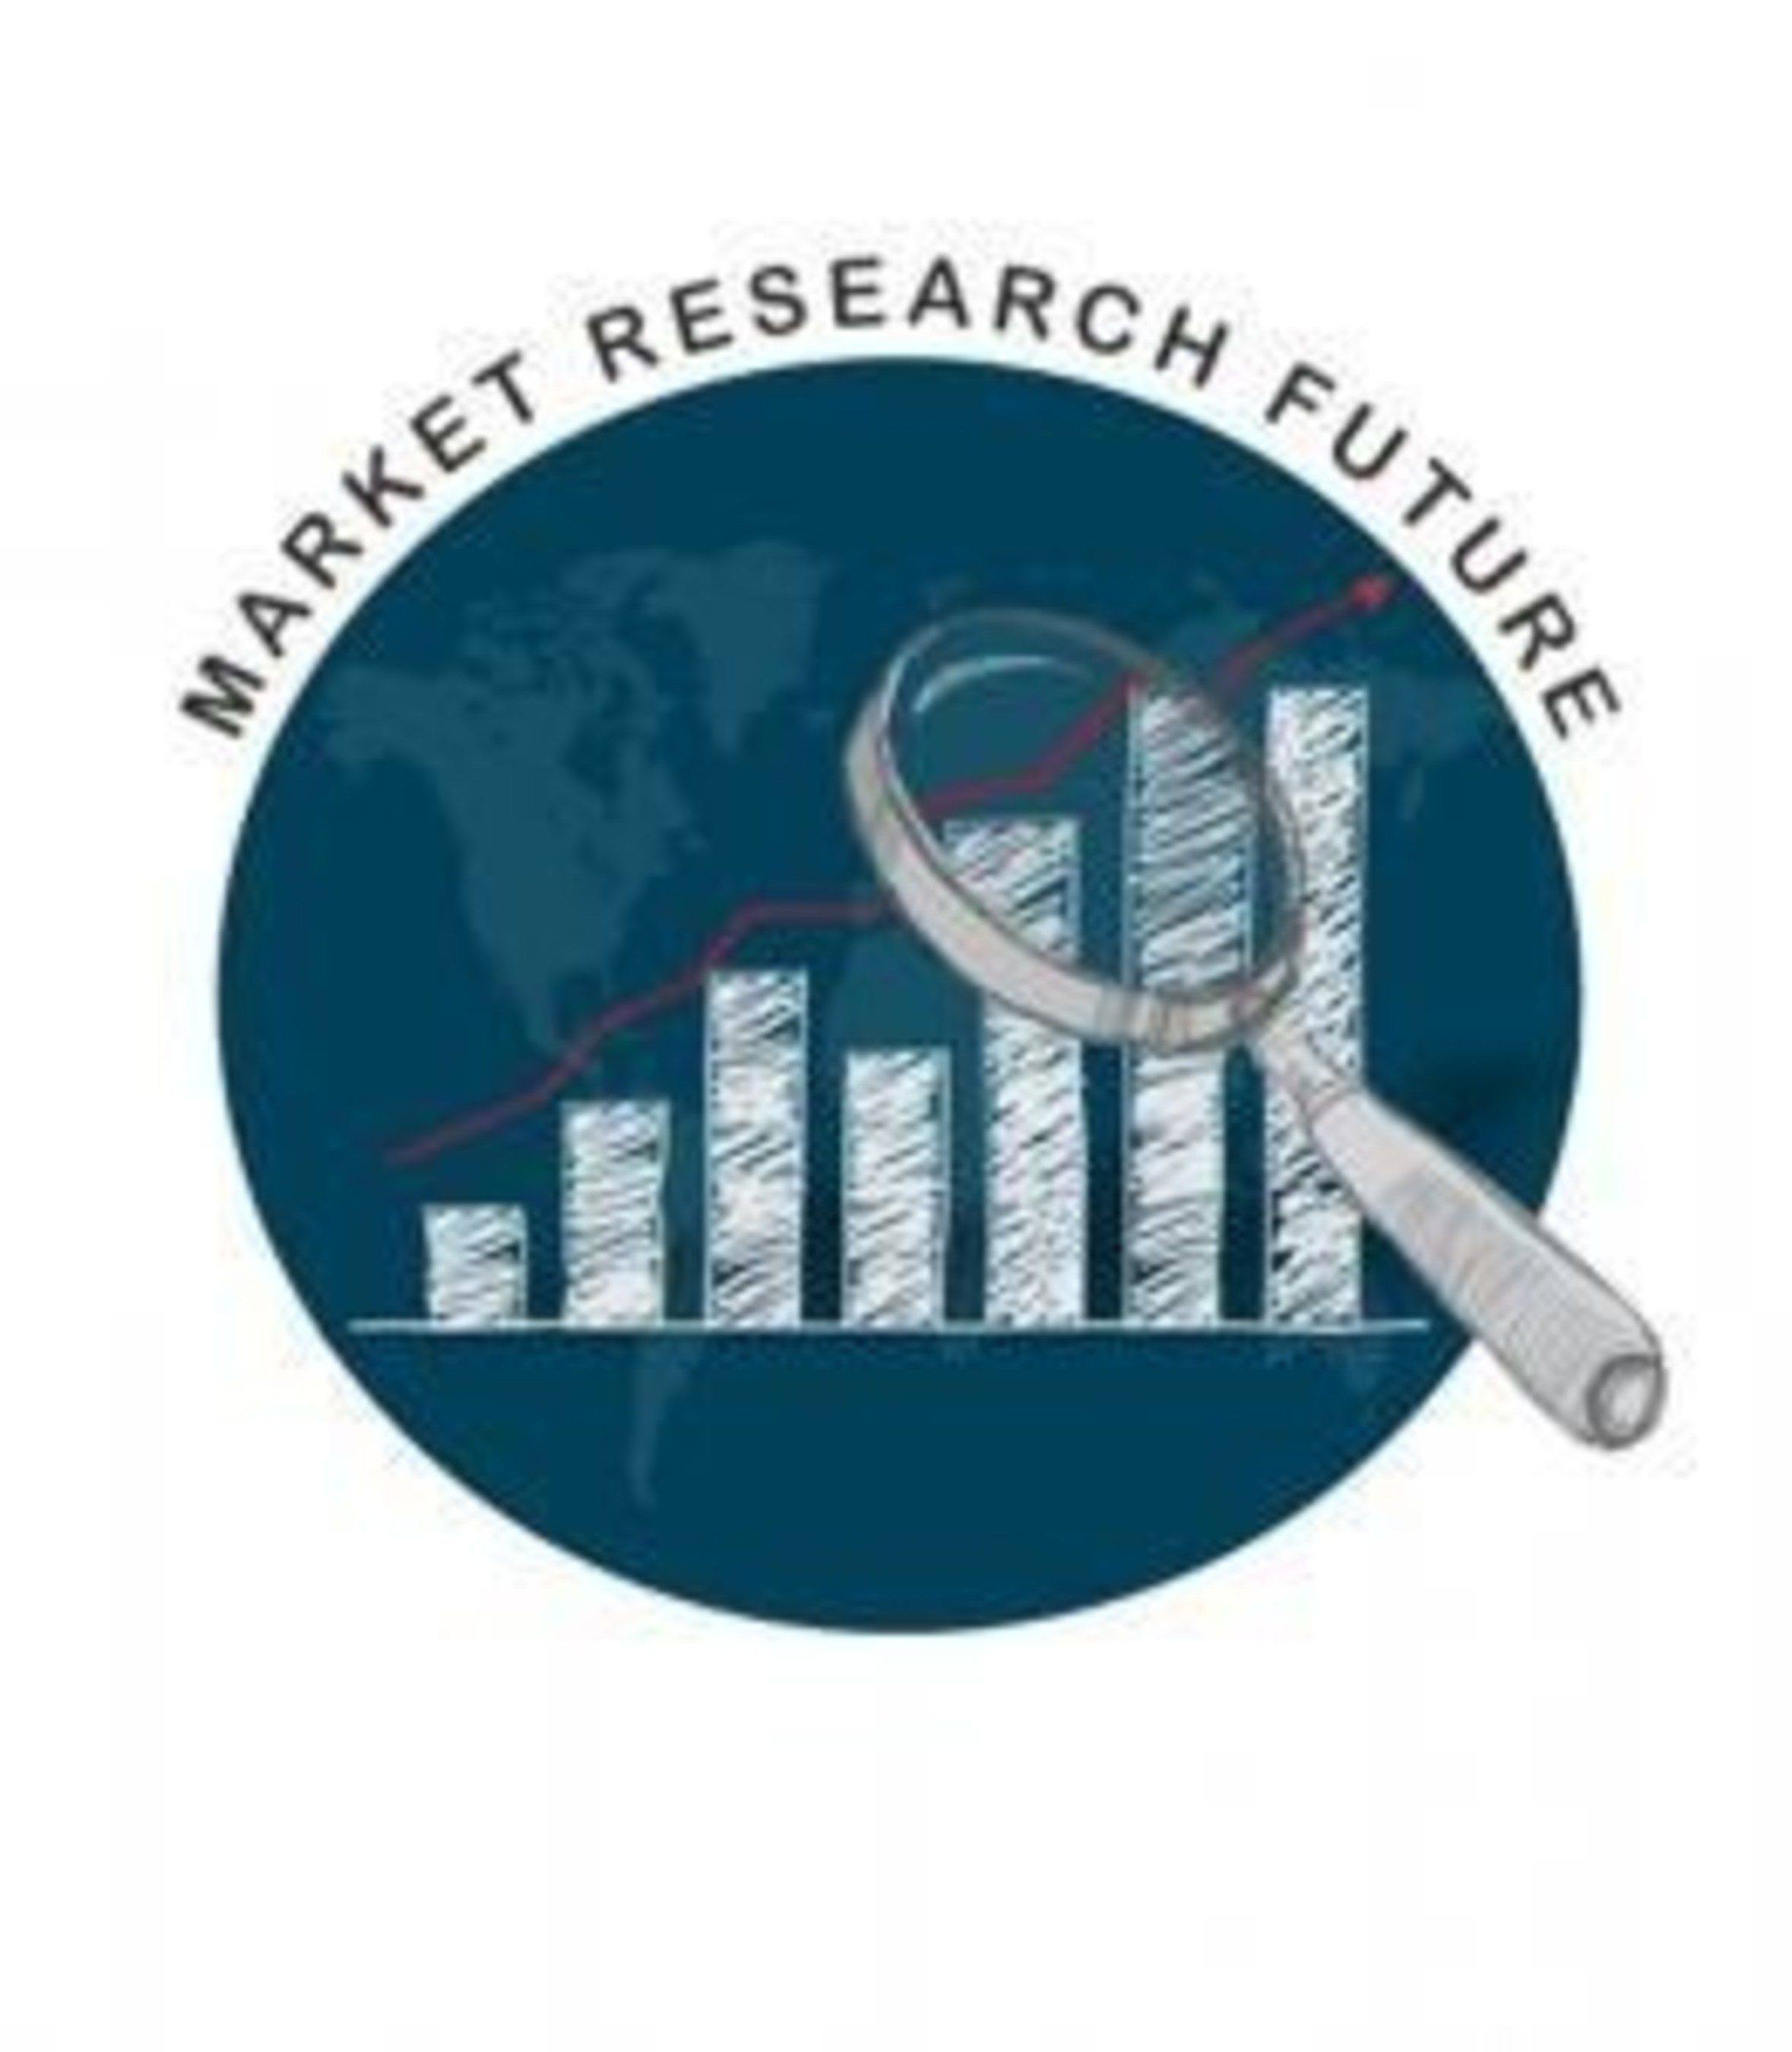 Industry Analysis - Global Dental CAD/CAM Market Scenario, Key Players, Segments, Drivers, Outlook Report to 2027